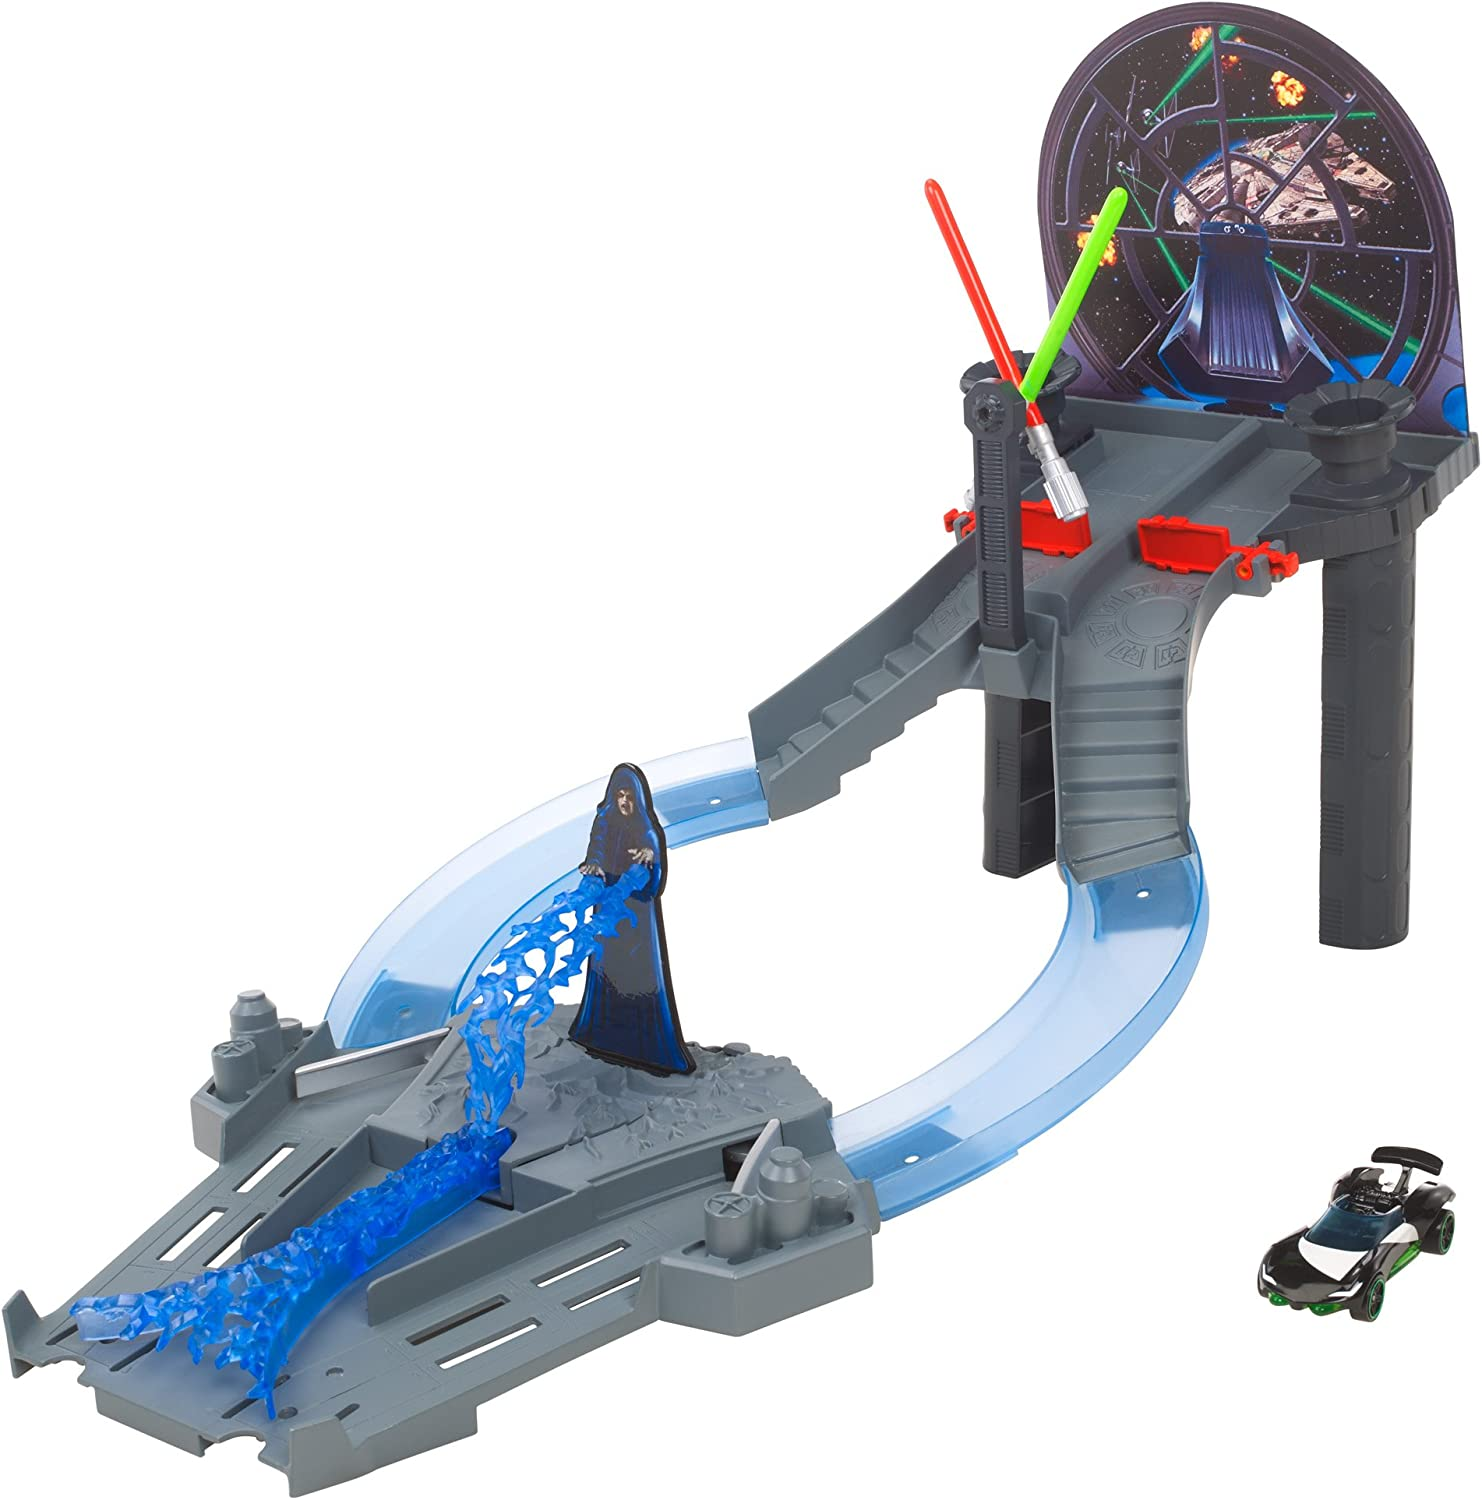 Hot Wheels Star Wars Throne Room Raceway Trackset